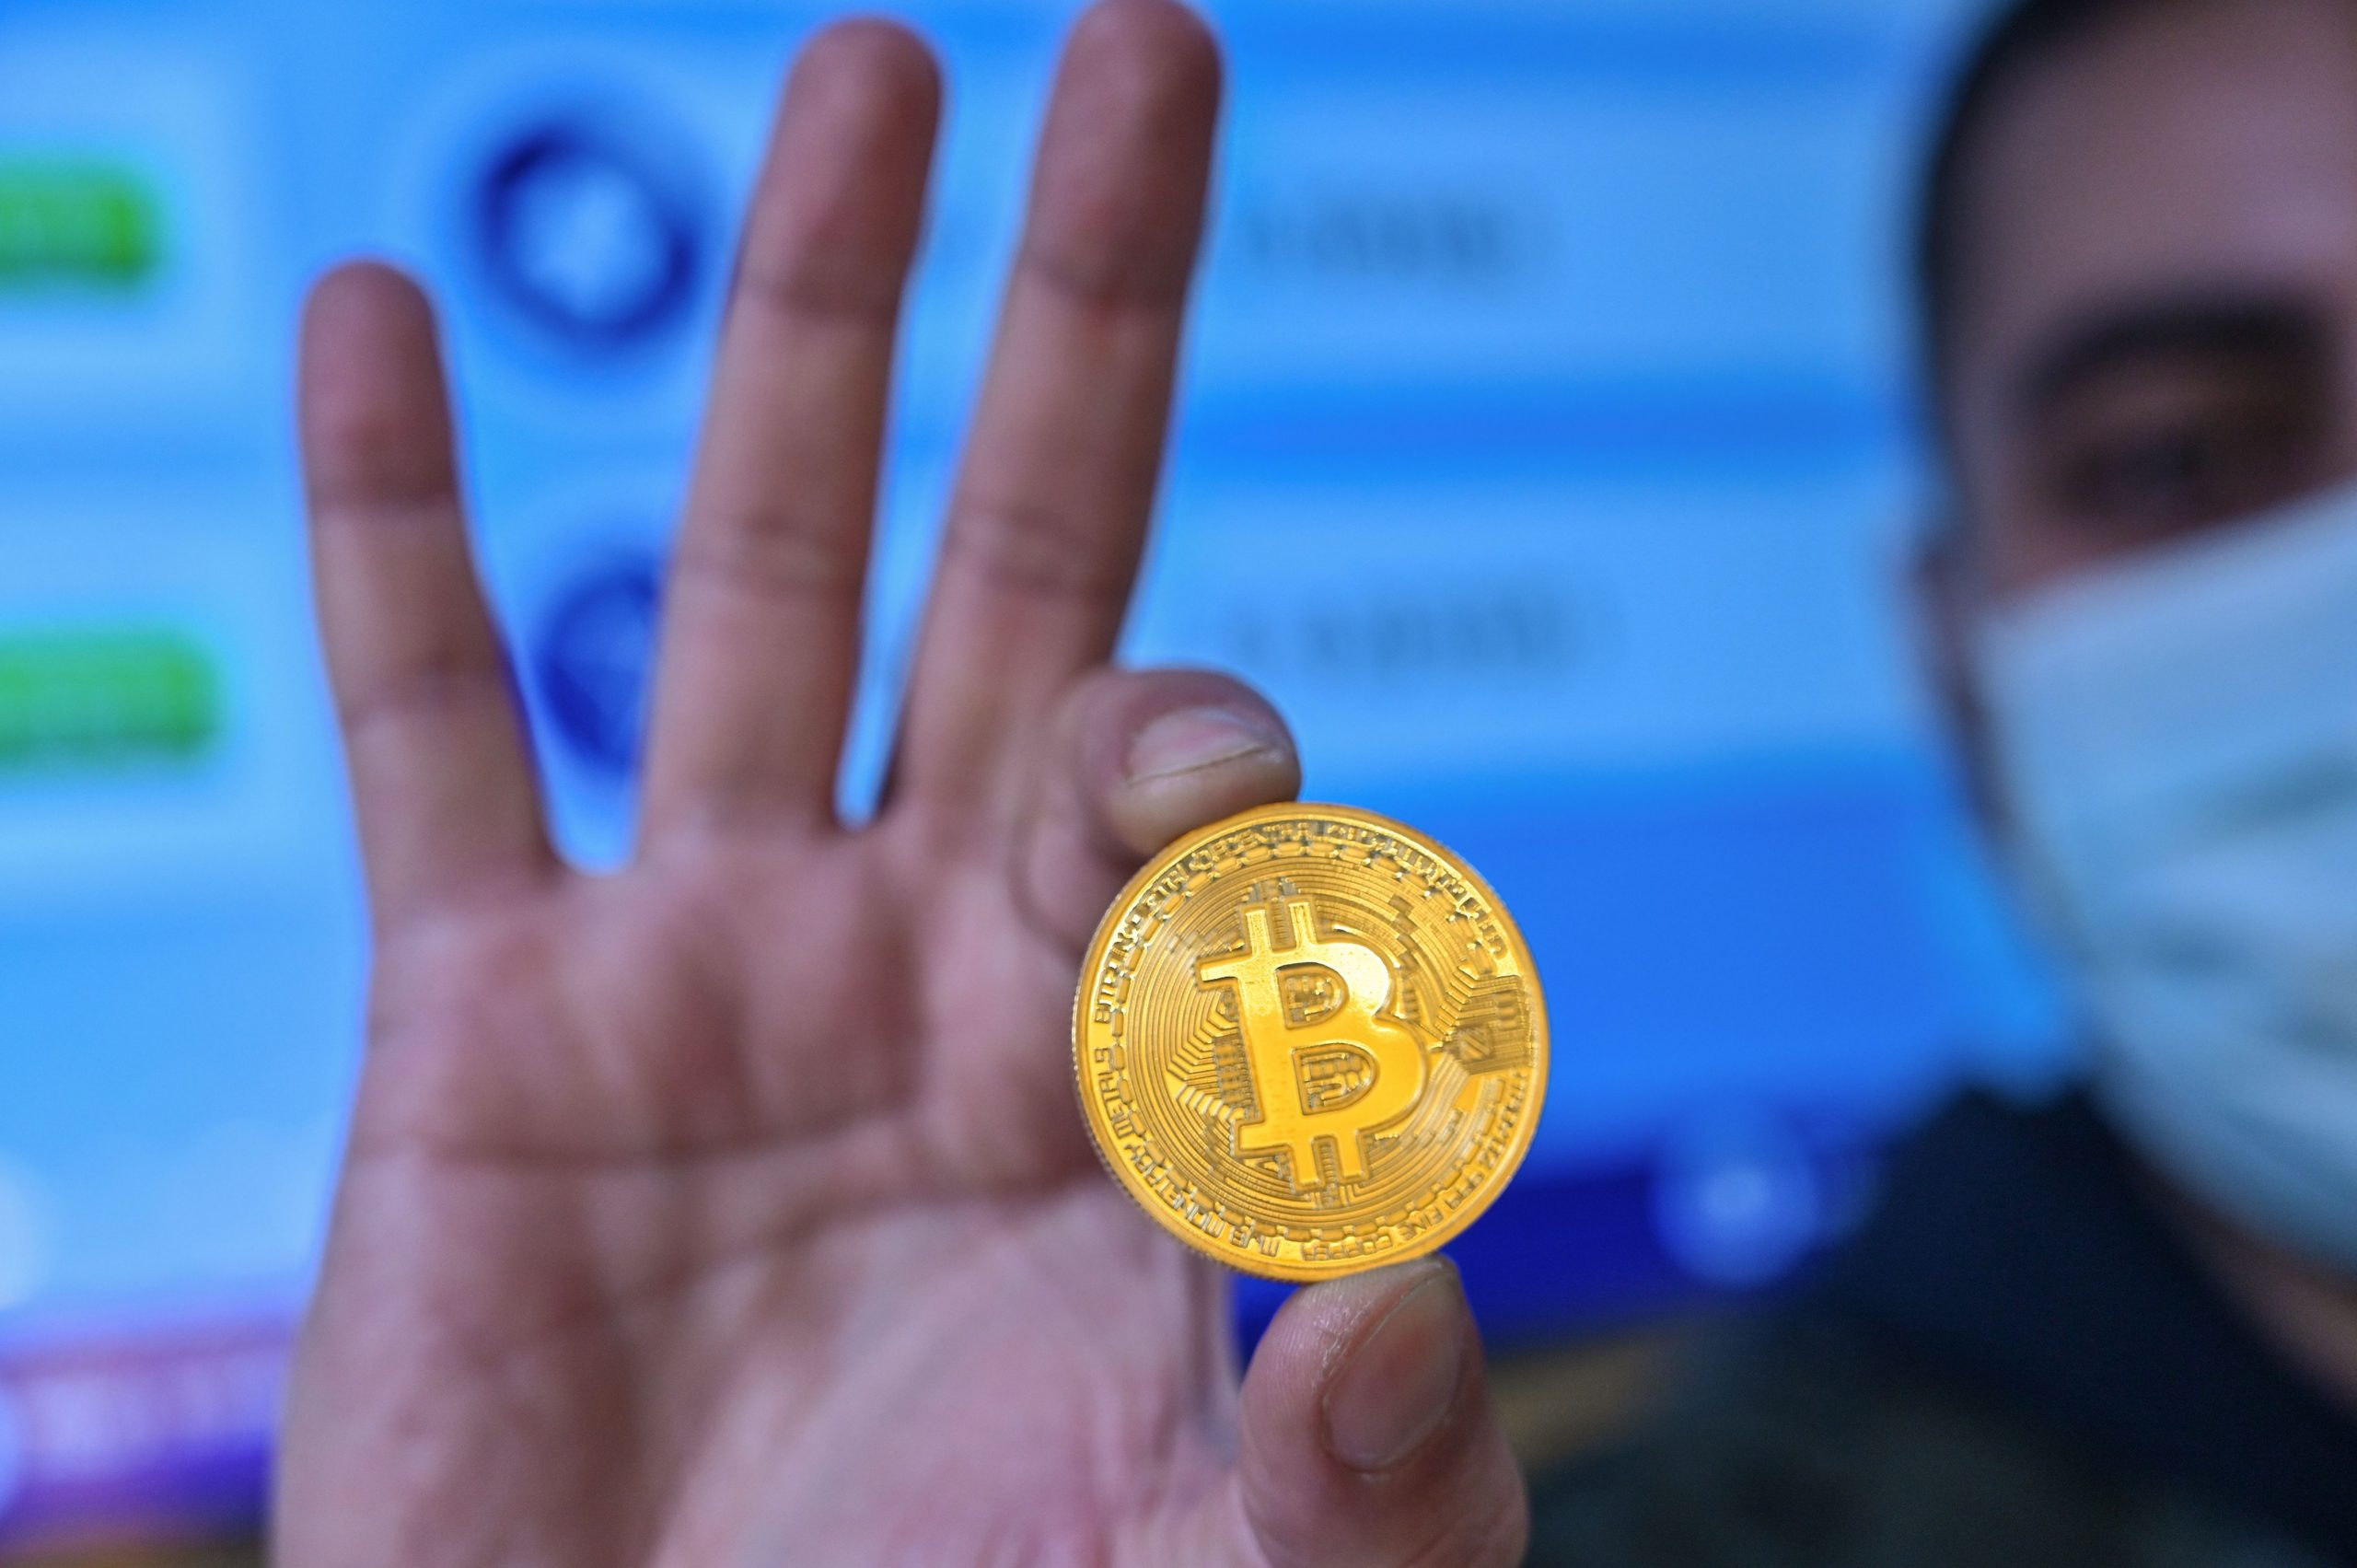 Banks should have capital set aside to cover crypto losses, regulators say